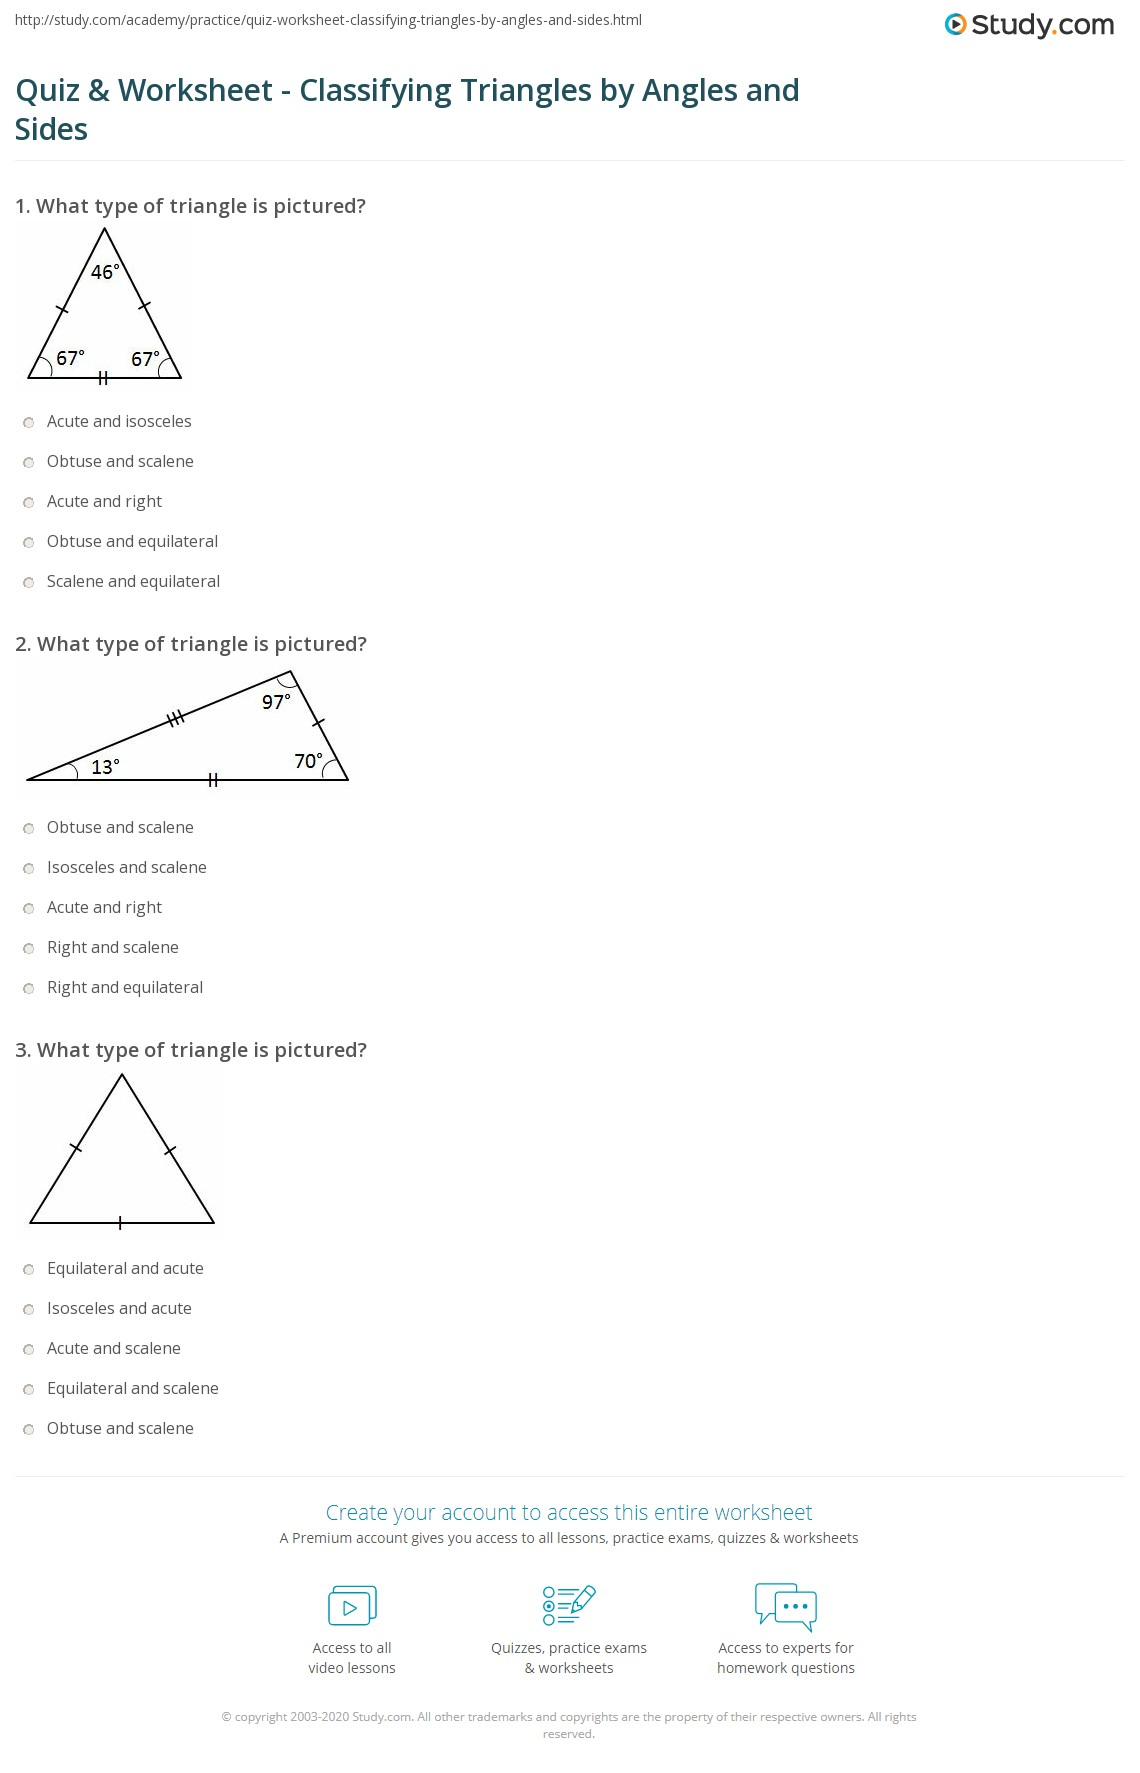 Quiz & Worksheet Classifying Triangles by Angles and Sides